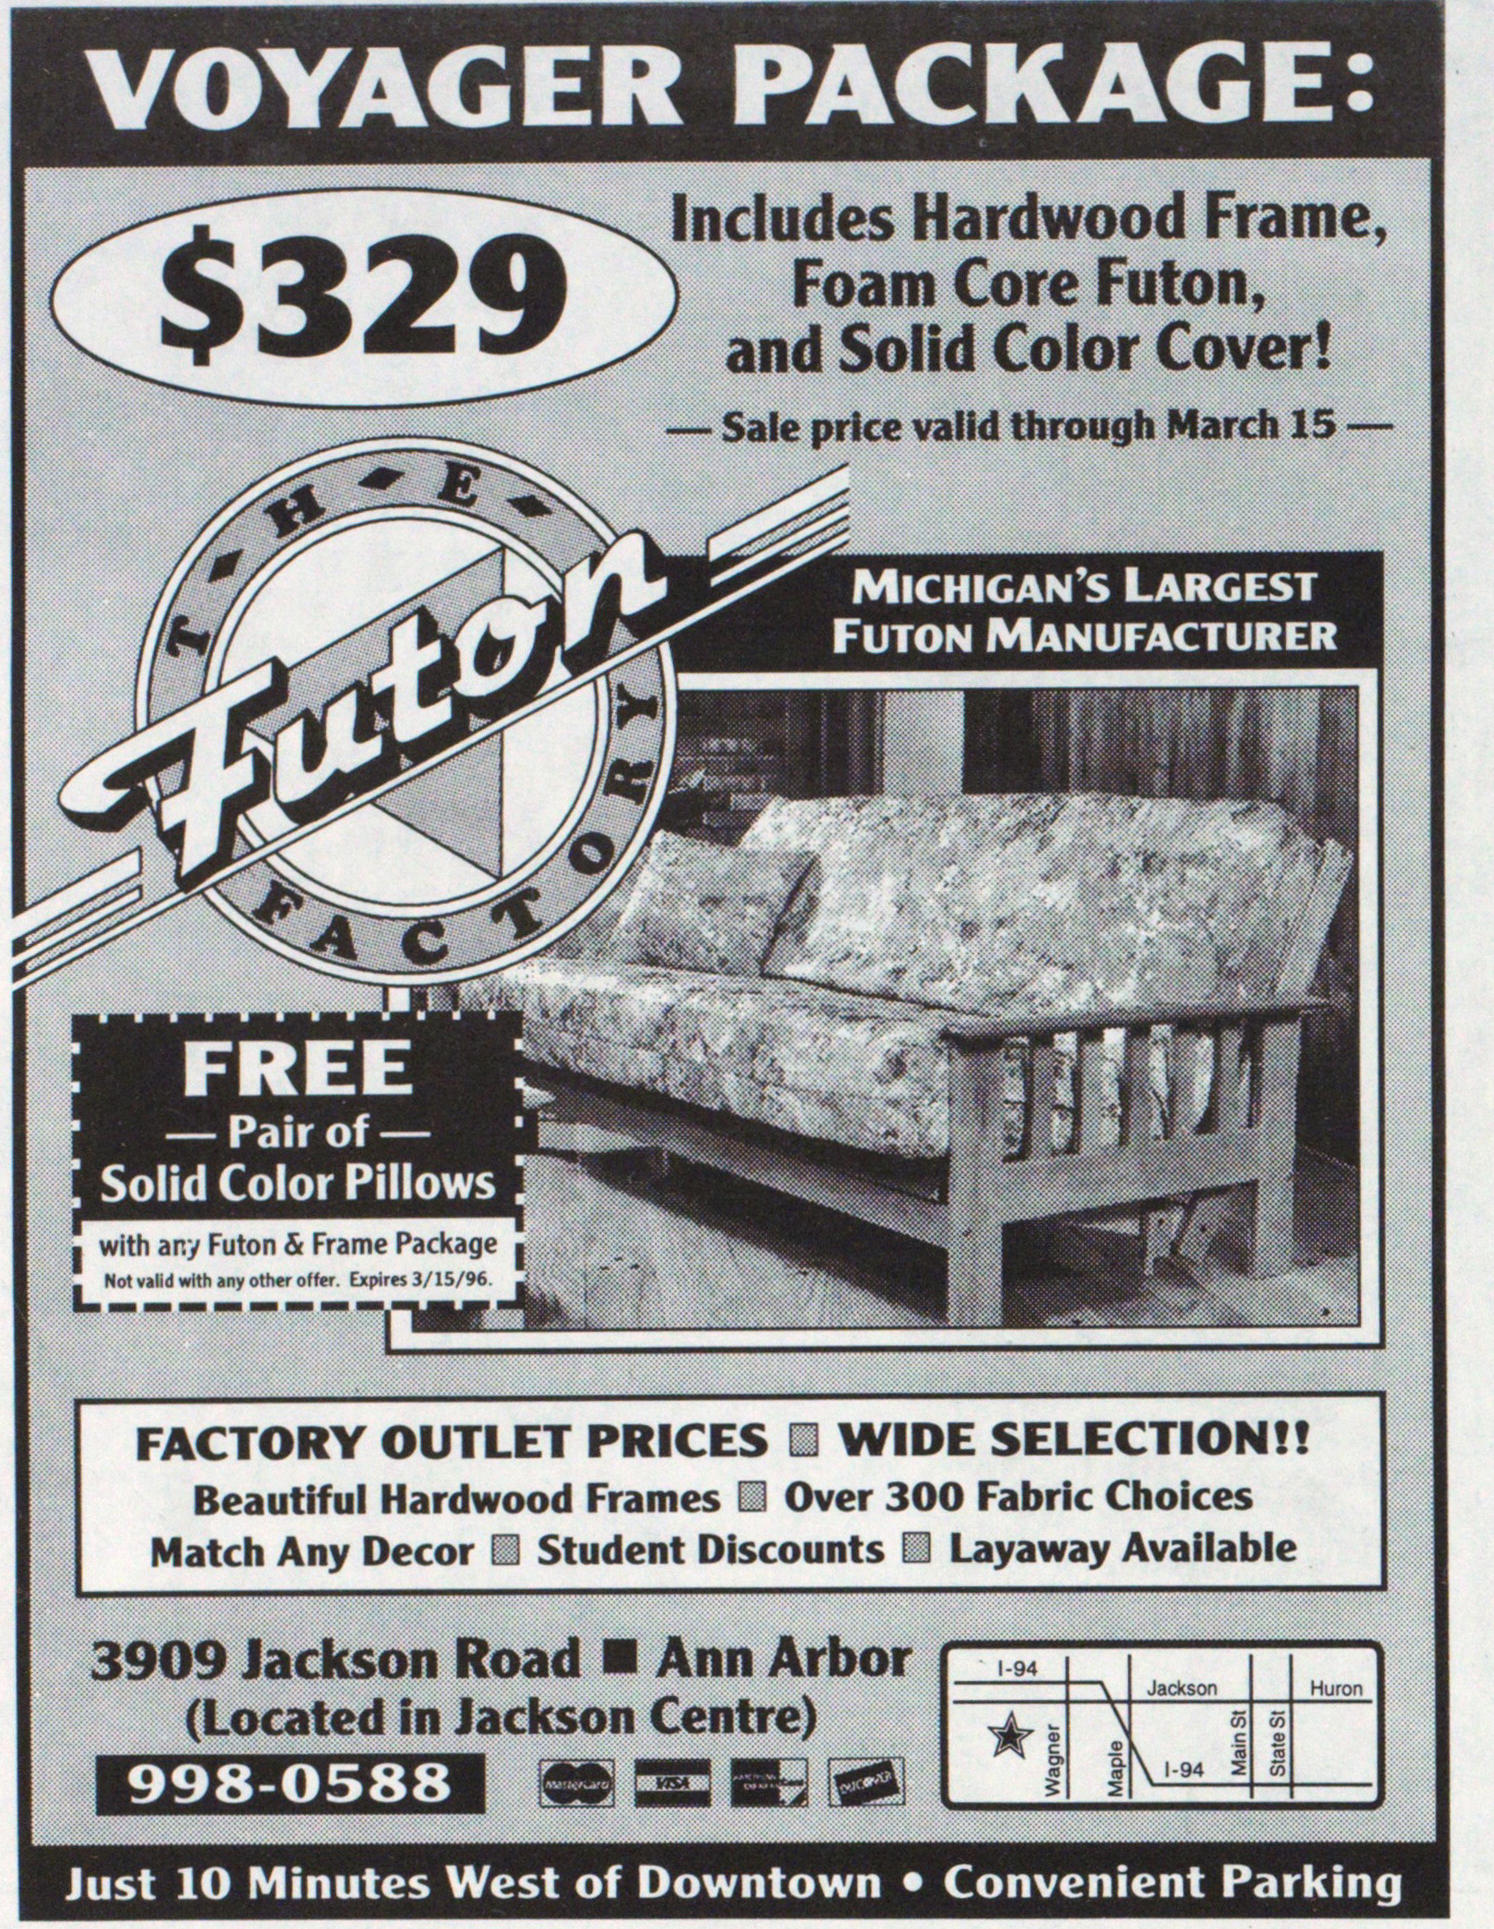 The Futon Factory